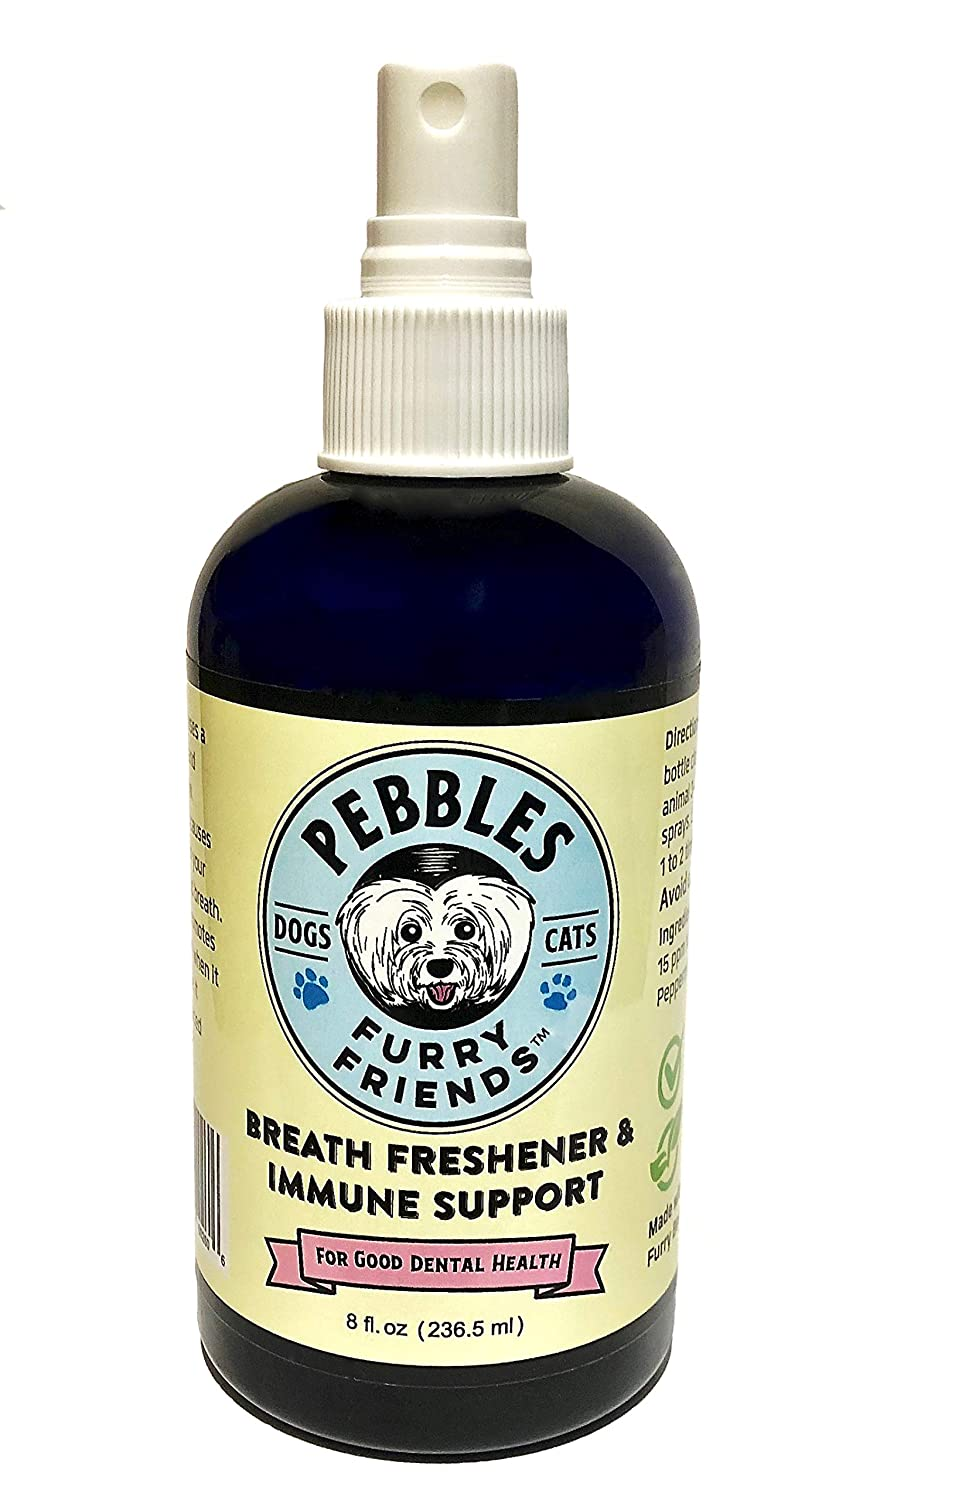 Pebbles Breath Freshener & Immune Support Spray • All Natural • NO Dangerous Chlorine Dioxide • Scientifically Proven to Eliminate Bacteria That Causes Bad Breath, Plaque and Tartar • 90 Day Supply